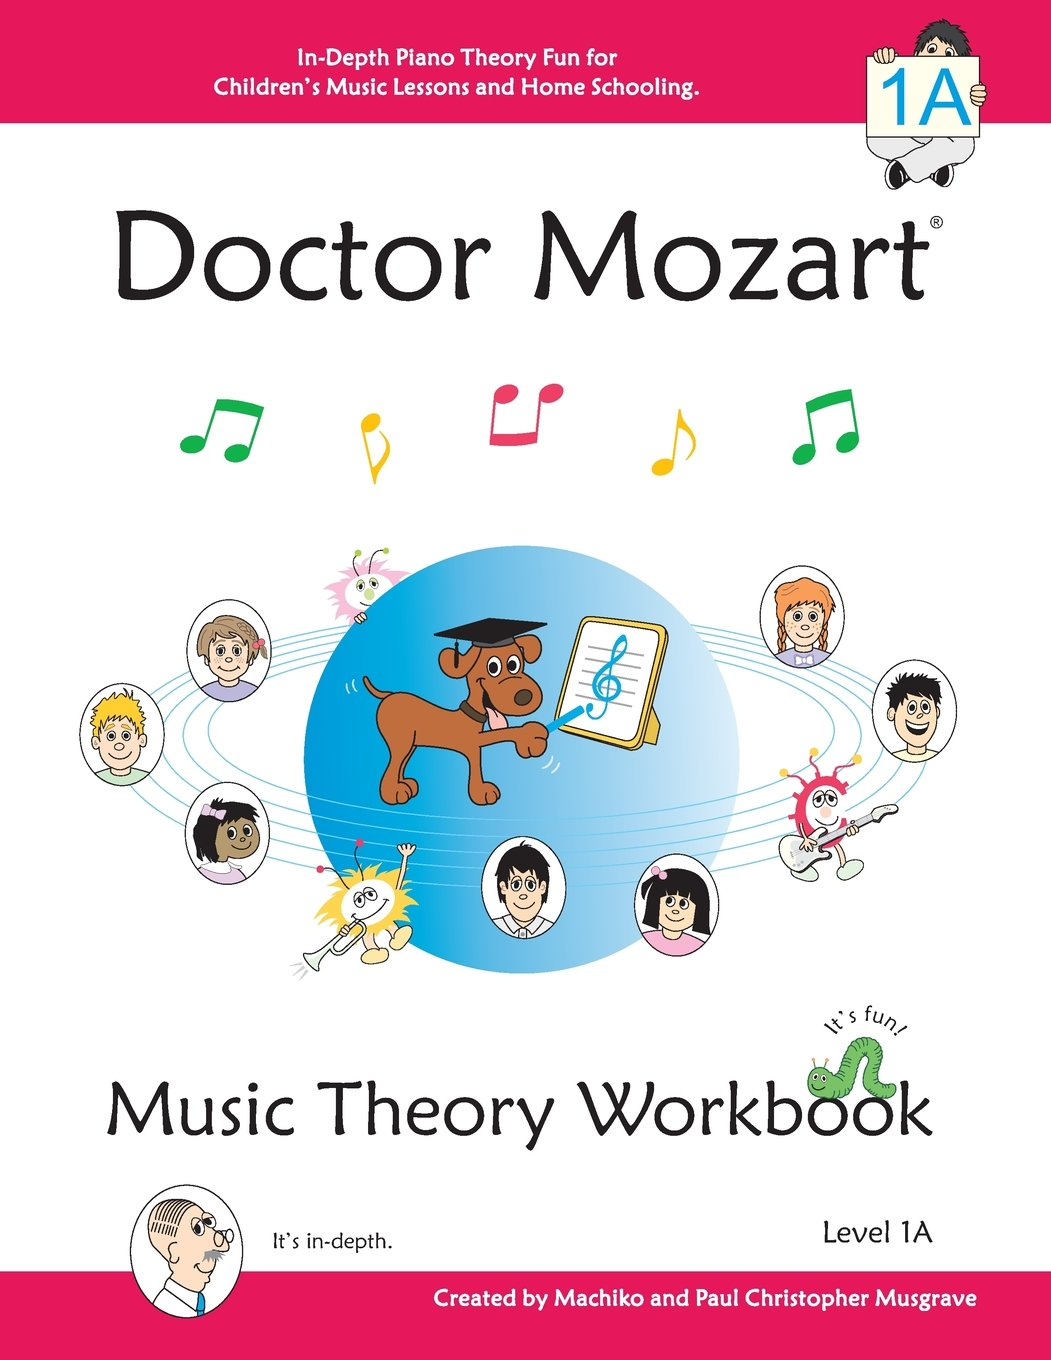 Doctor Mozart Theory Workbook Depth product image